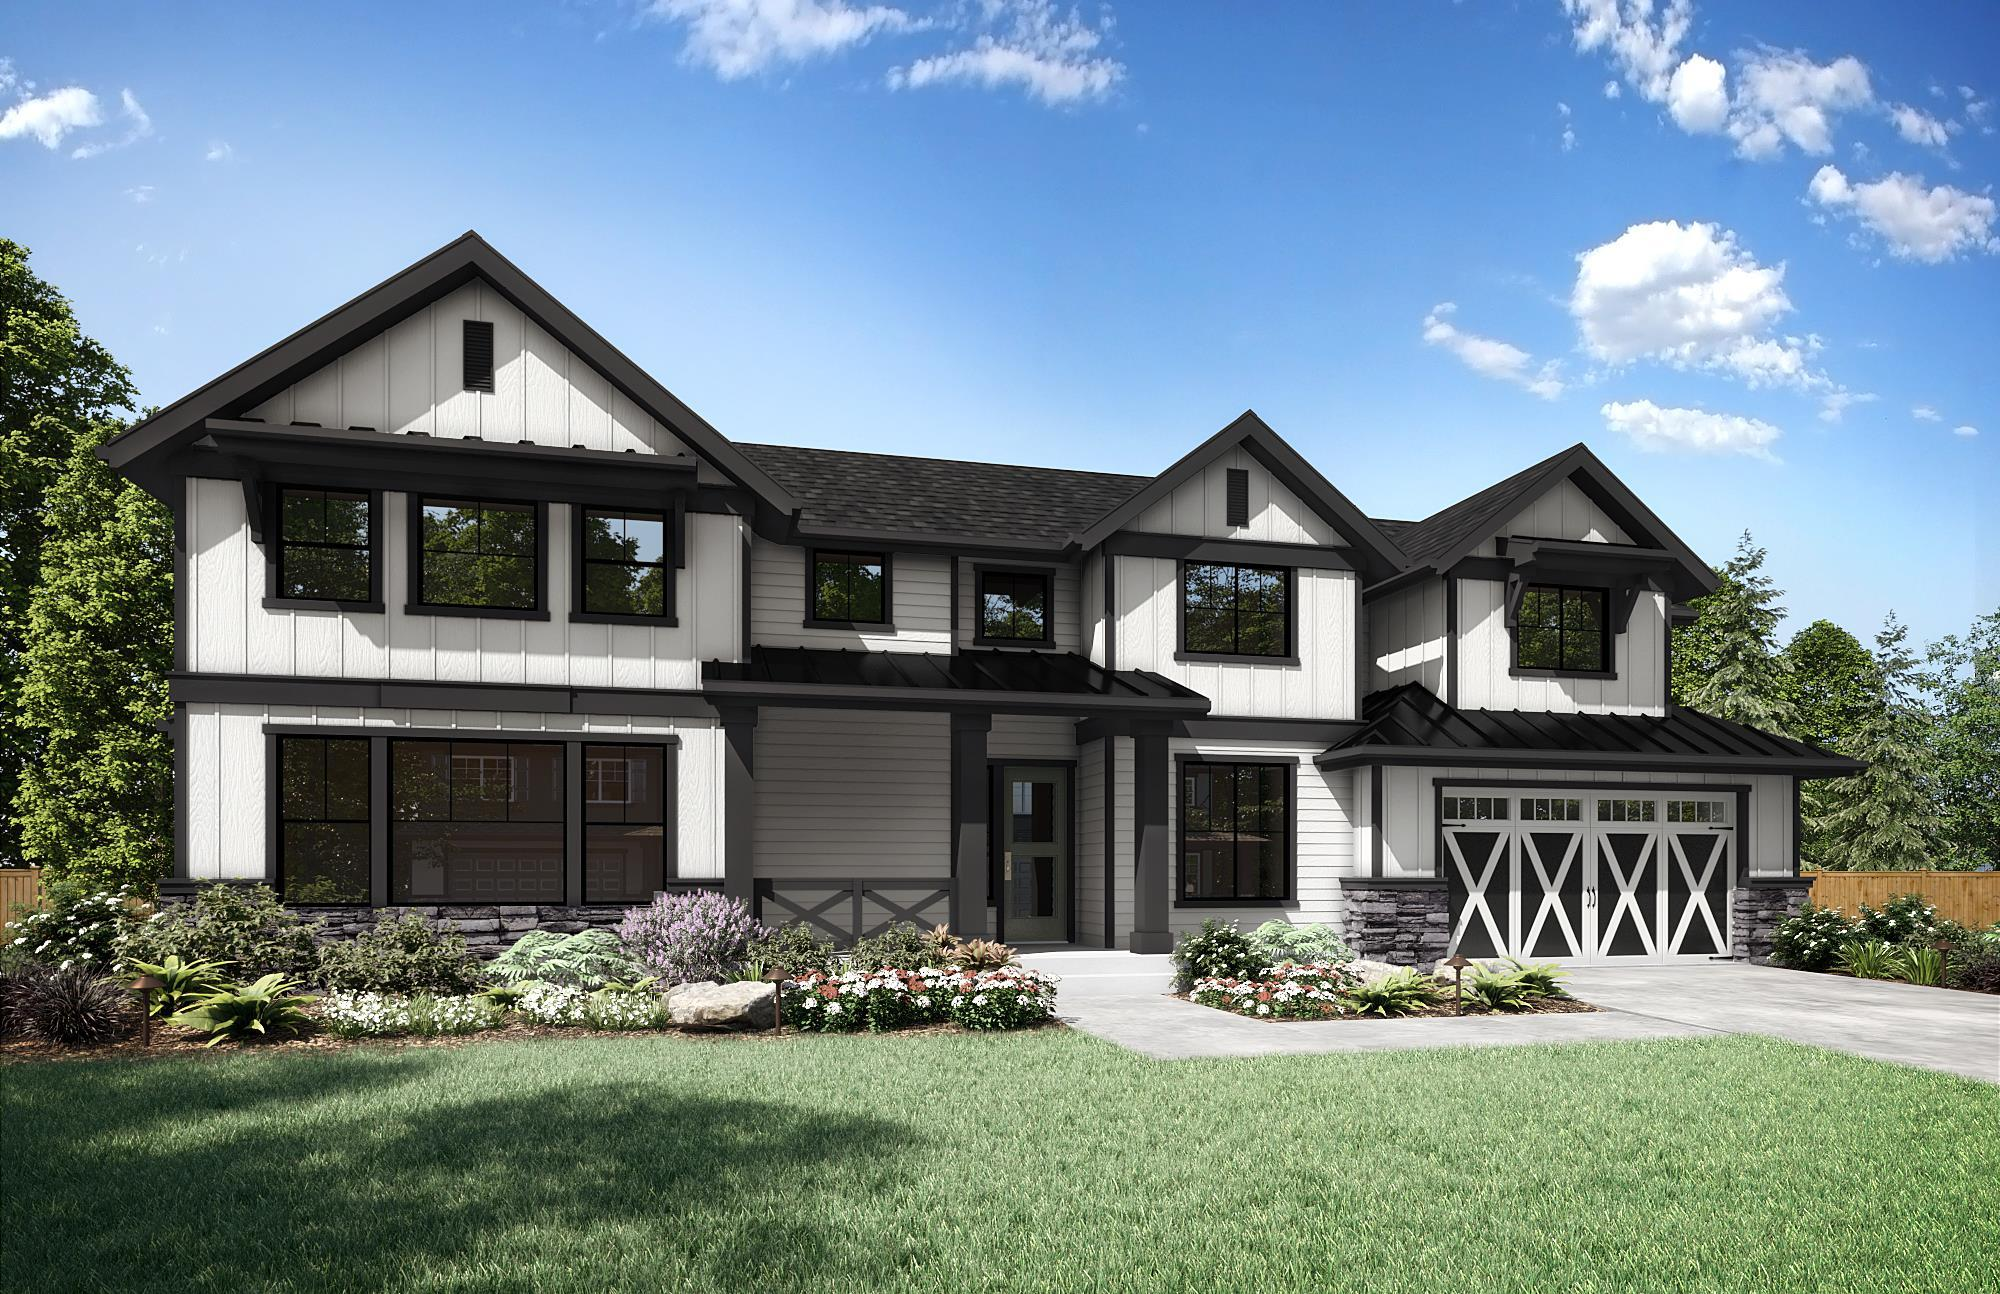 Exterior featured in the Ravenna Front Load Garage Floor Plan By Sager Family Homes in Tacoma, WA